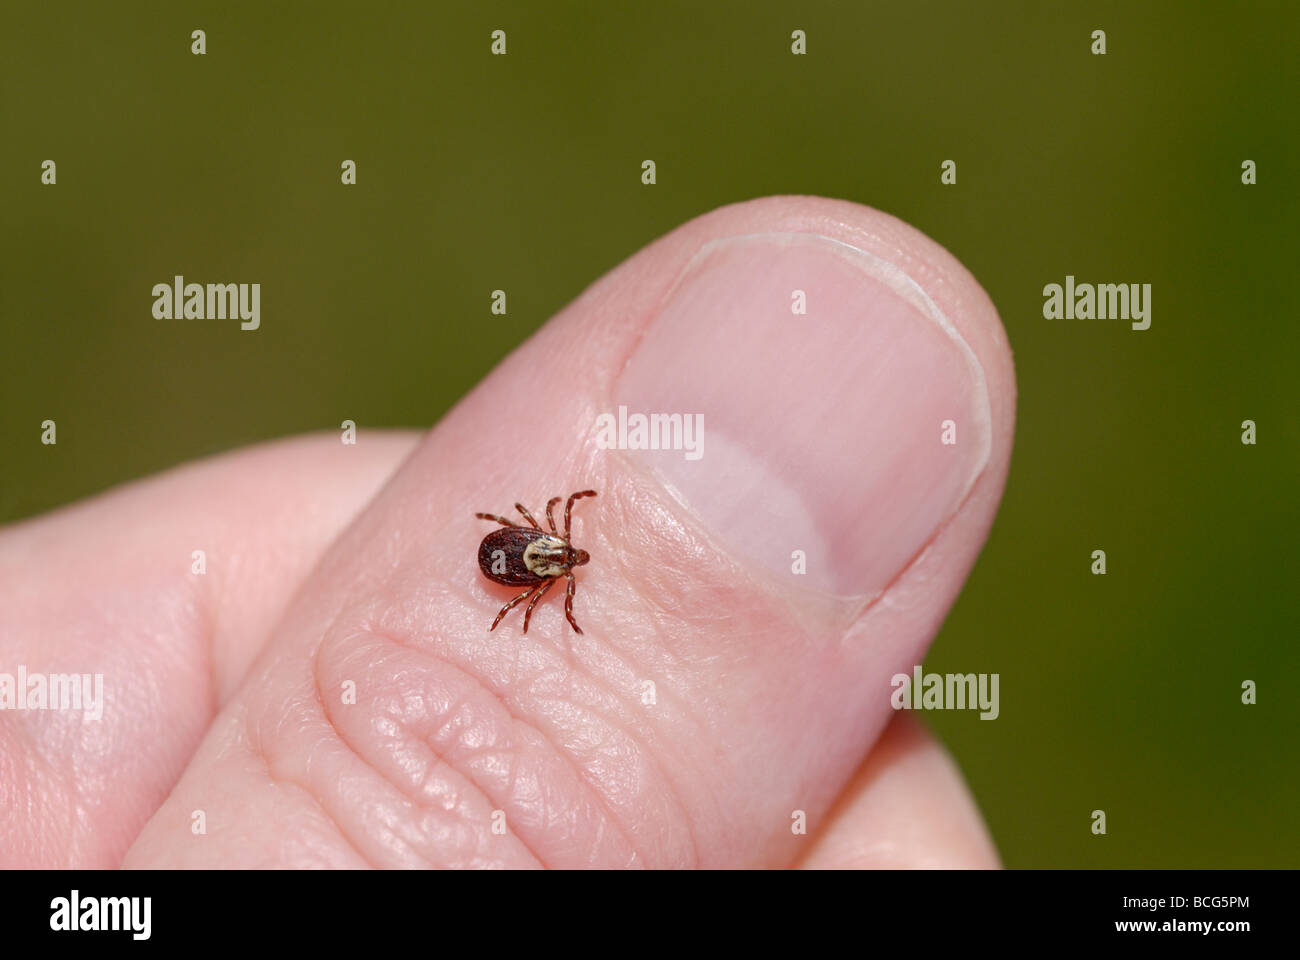 Female American dog tick, Dermacentor variabilis, also known as the wood tick - Stock Image